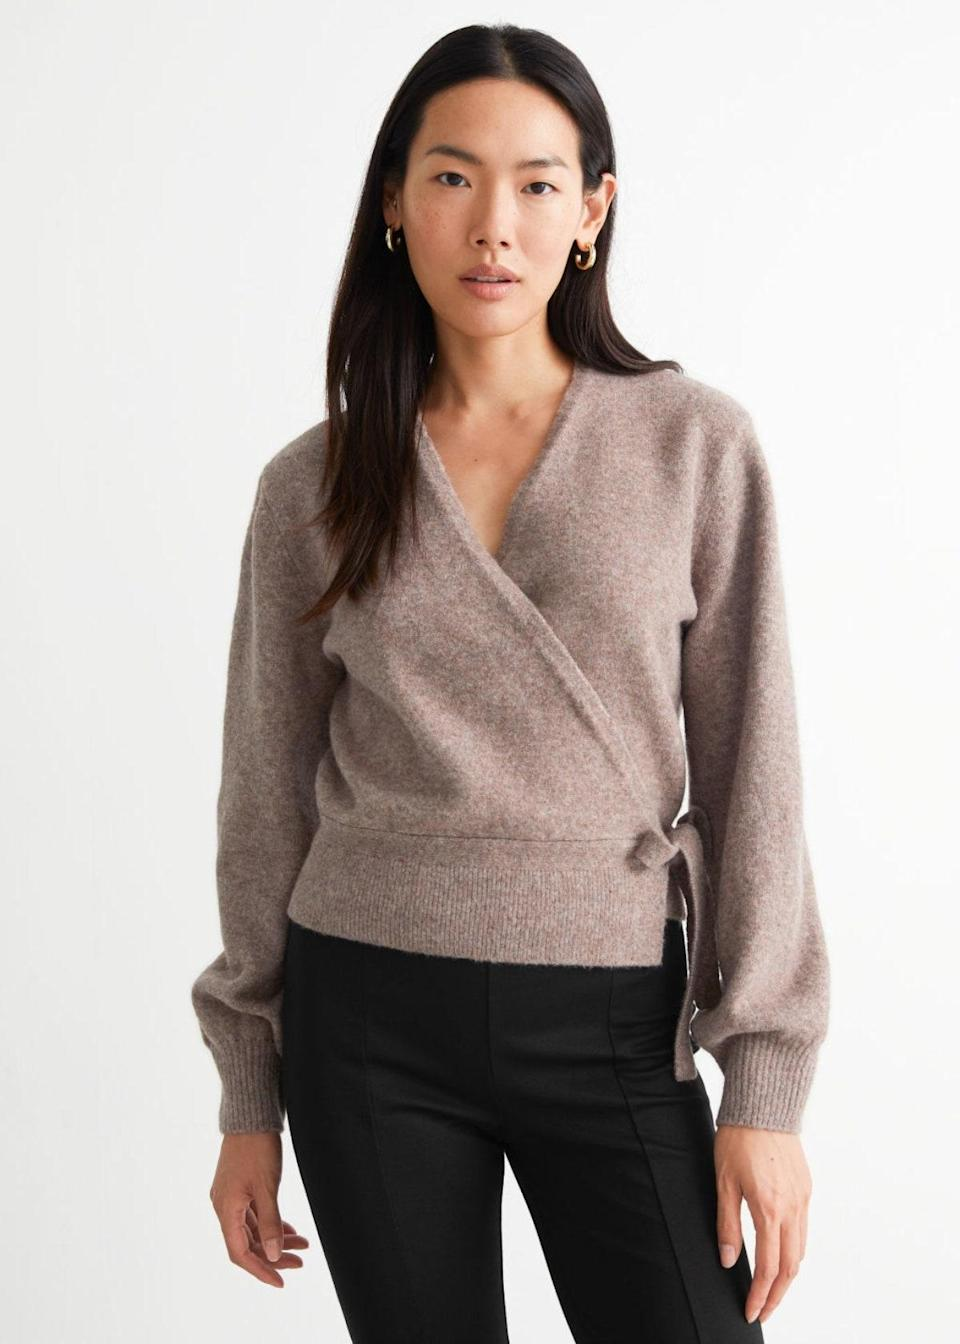 """This ballet-inspired wrap will put a romantic spin on all your ensembles. And doesn't it look deliciously soft? $59, & Other Stories. <a href=""""https://www.stories.com/en_usd/clothing/knitwear/cardigans/product.wrap-cardigan-beige.1008612003.html"""" rel=""""nofollow noopener"""" target=""""_blank"""" data-ylk=""""slk:Get it now!"""" class=""""link rapid-noclick-resp"""">Get it now!</a>"""